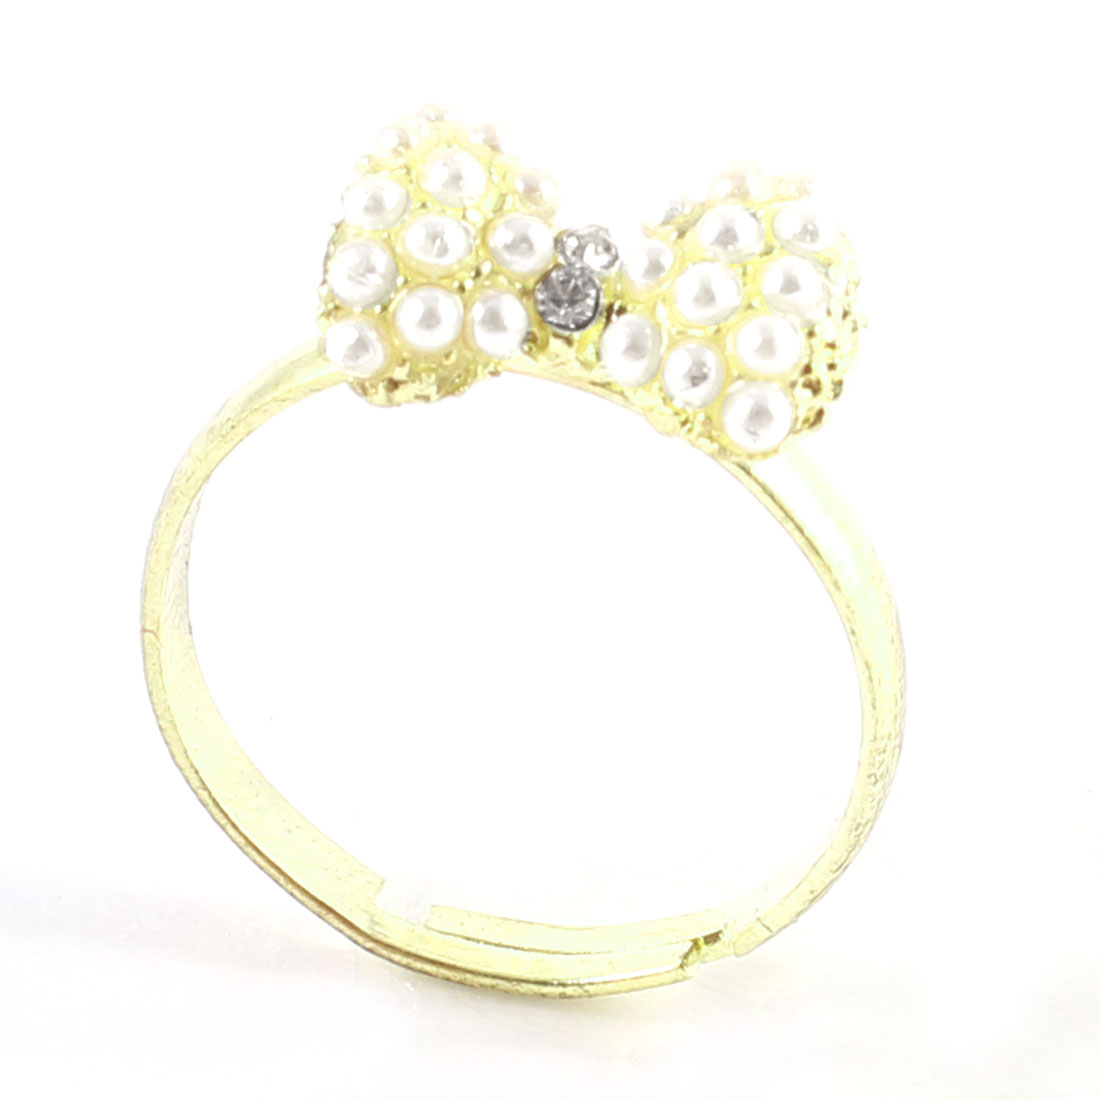 Ladies Rhinestone White Faux Pearl Inlaid Gold Tone Metal Bowknot Finger Ring